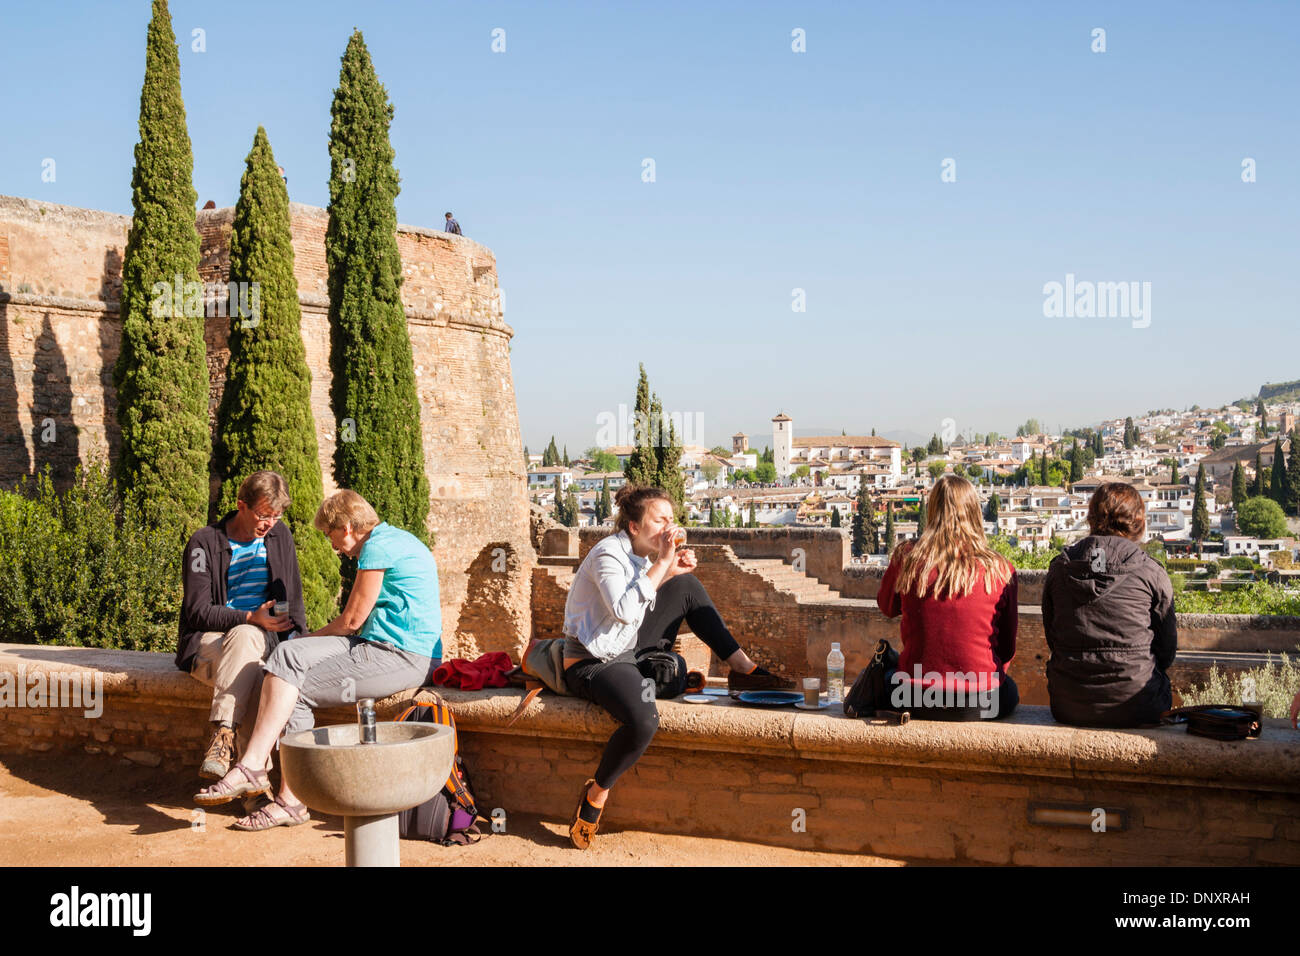 Tourists in La Alhambra, Granada, Andalusia, Spain - Stock Image